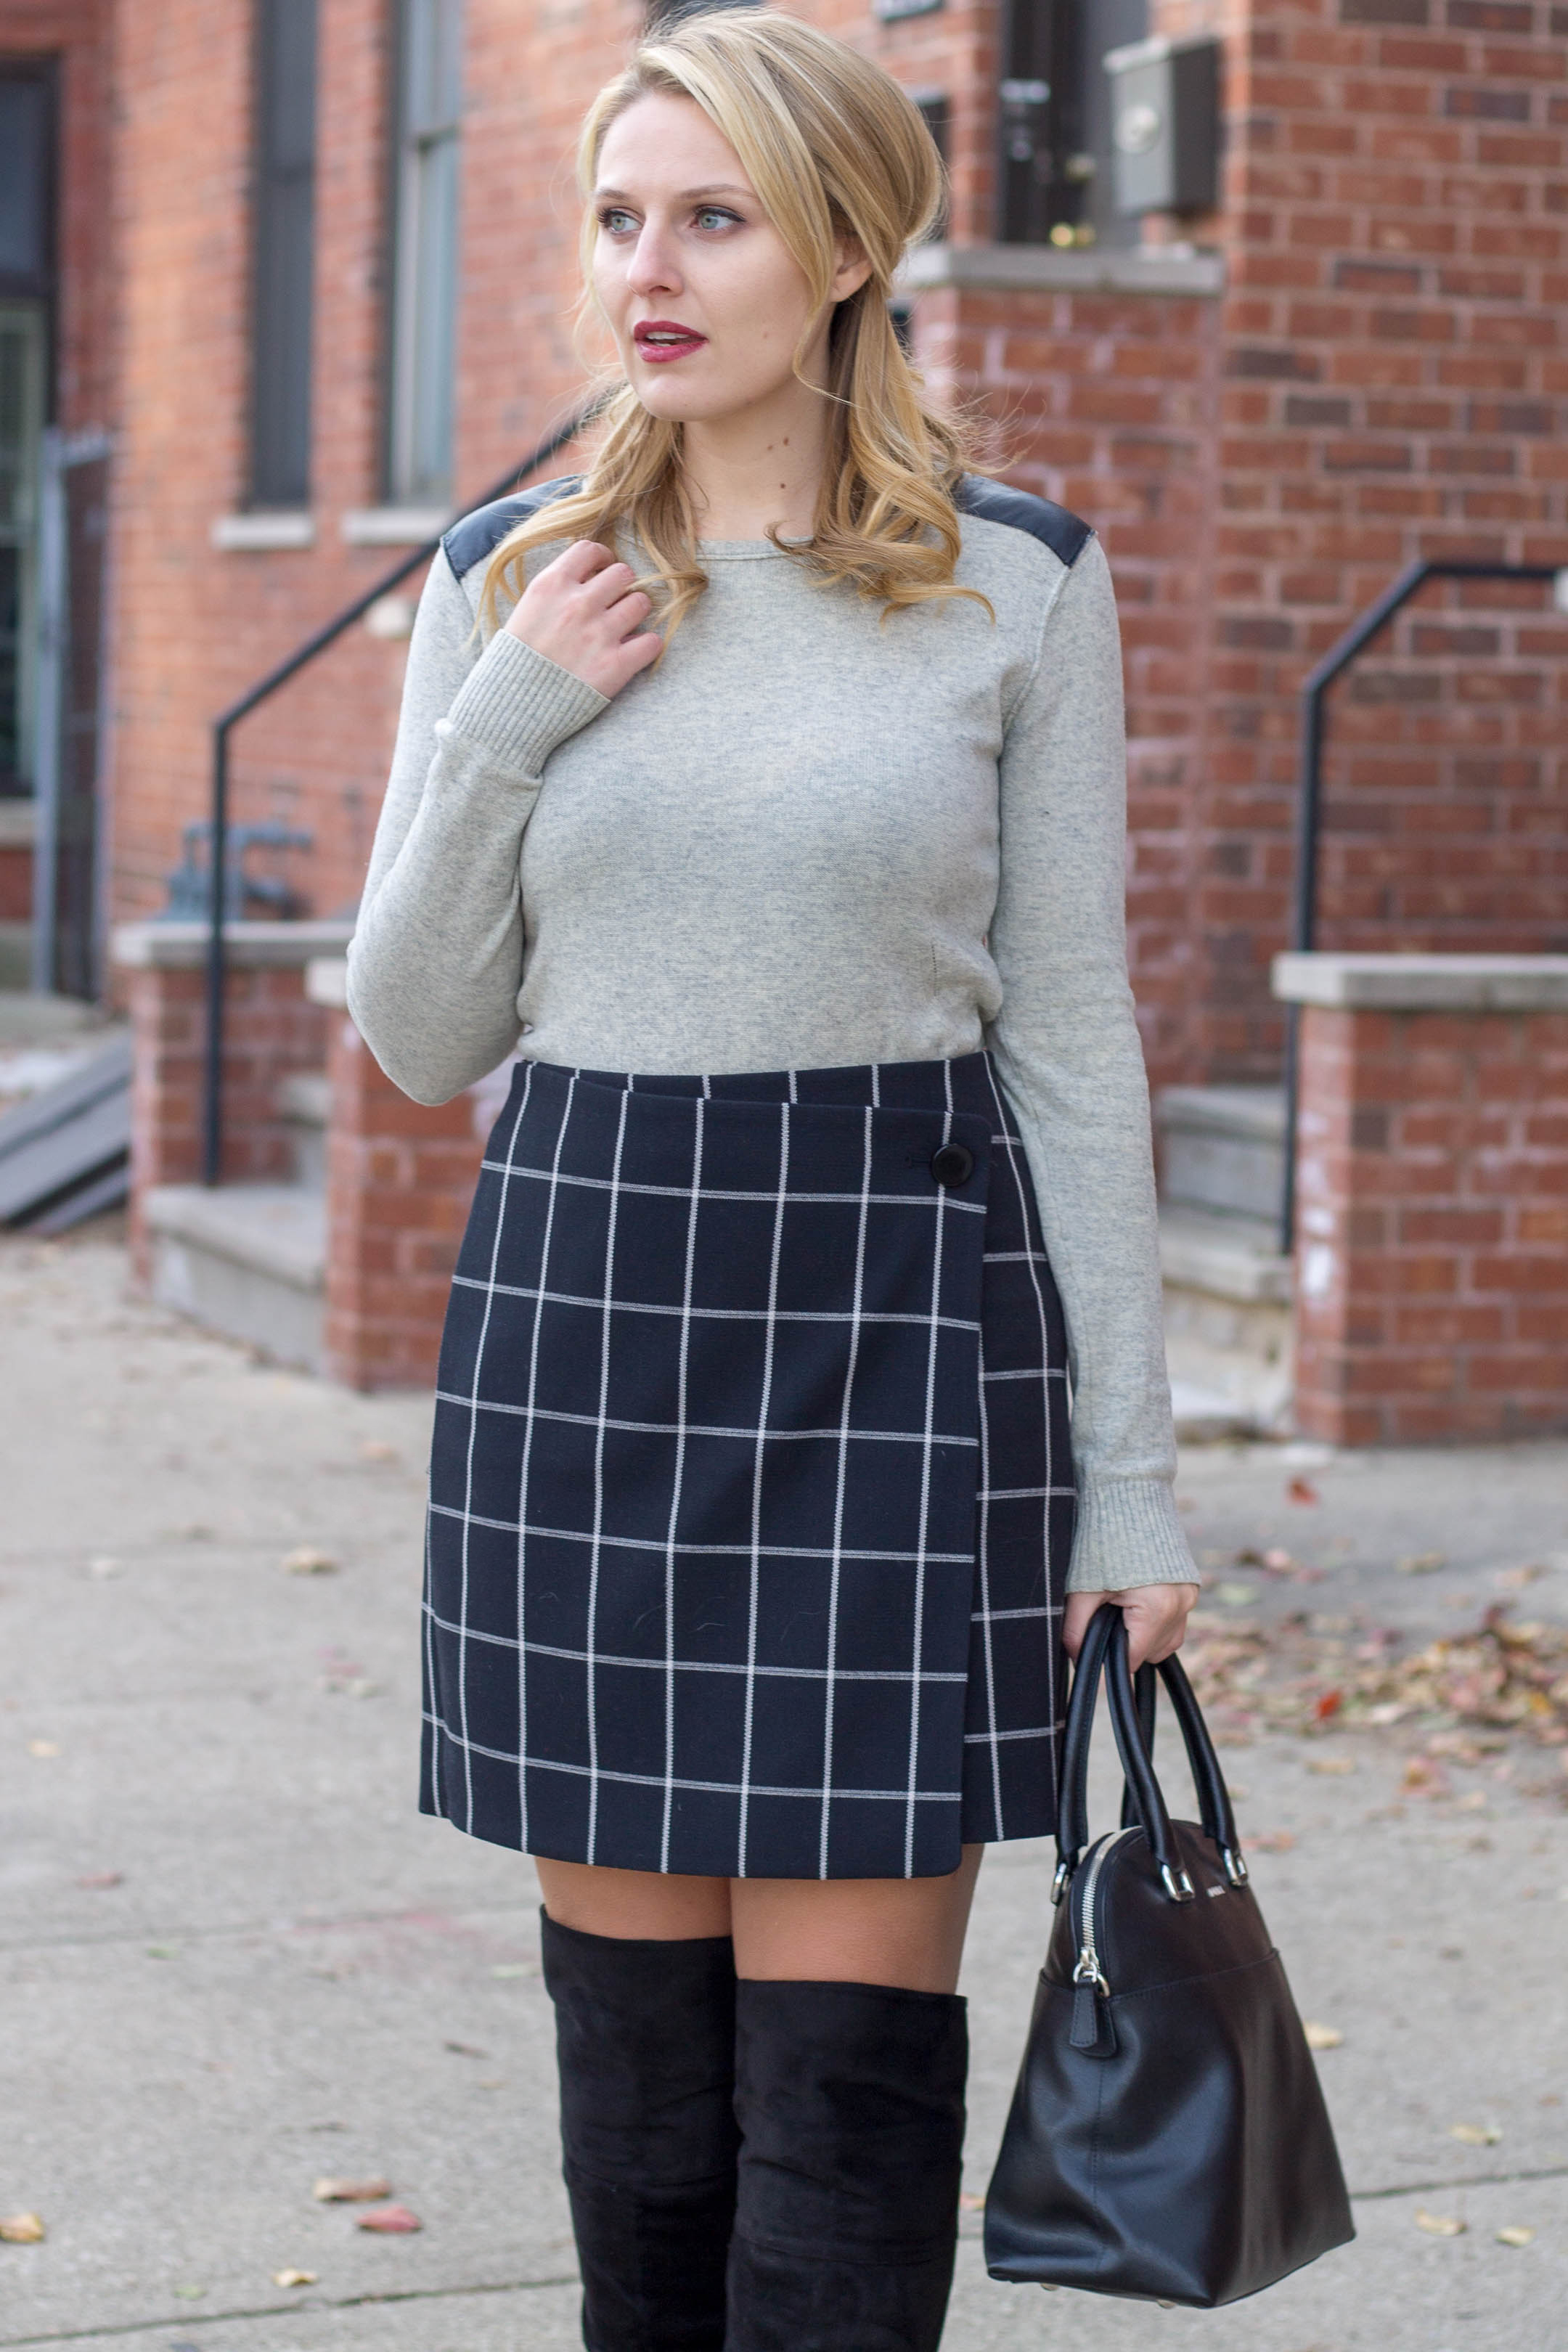 A simple and easy winter work outfit wearing a windowpane skirt and cashmere sweater